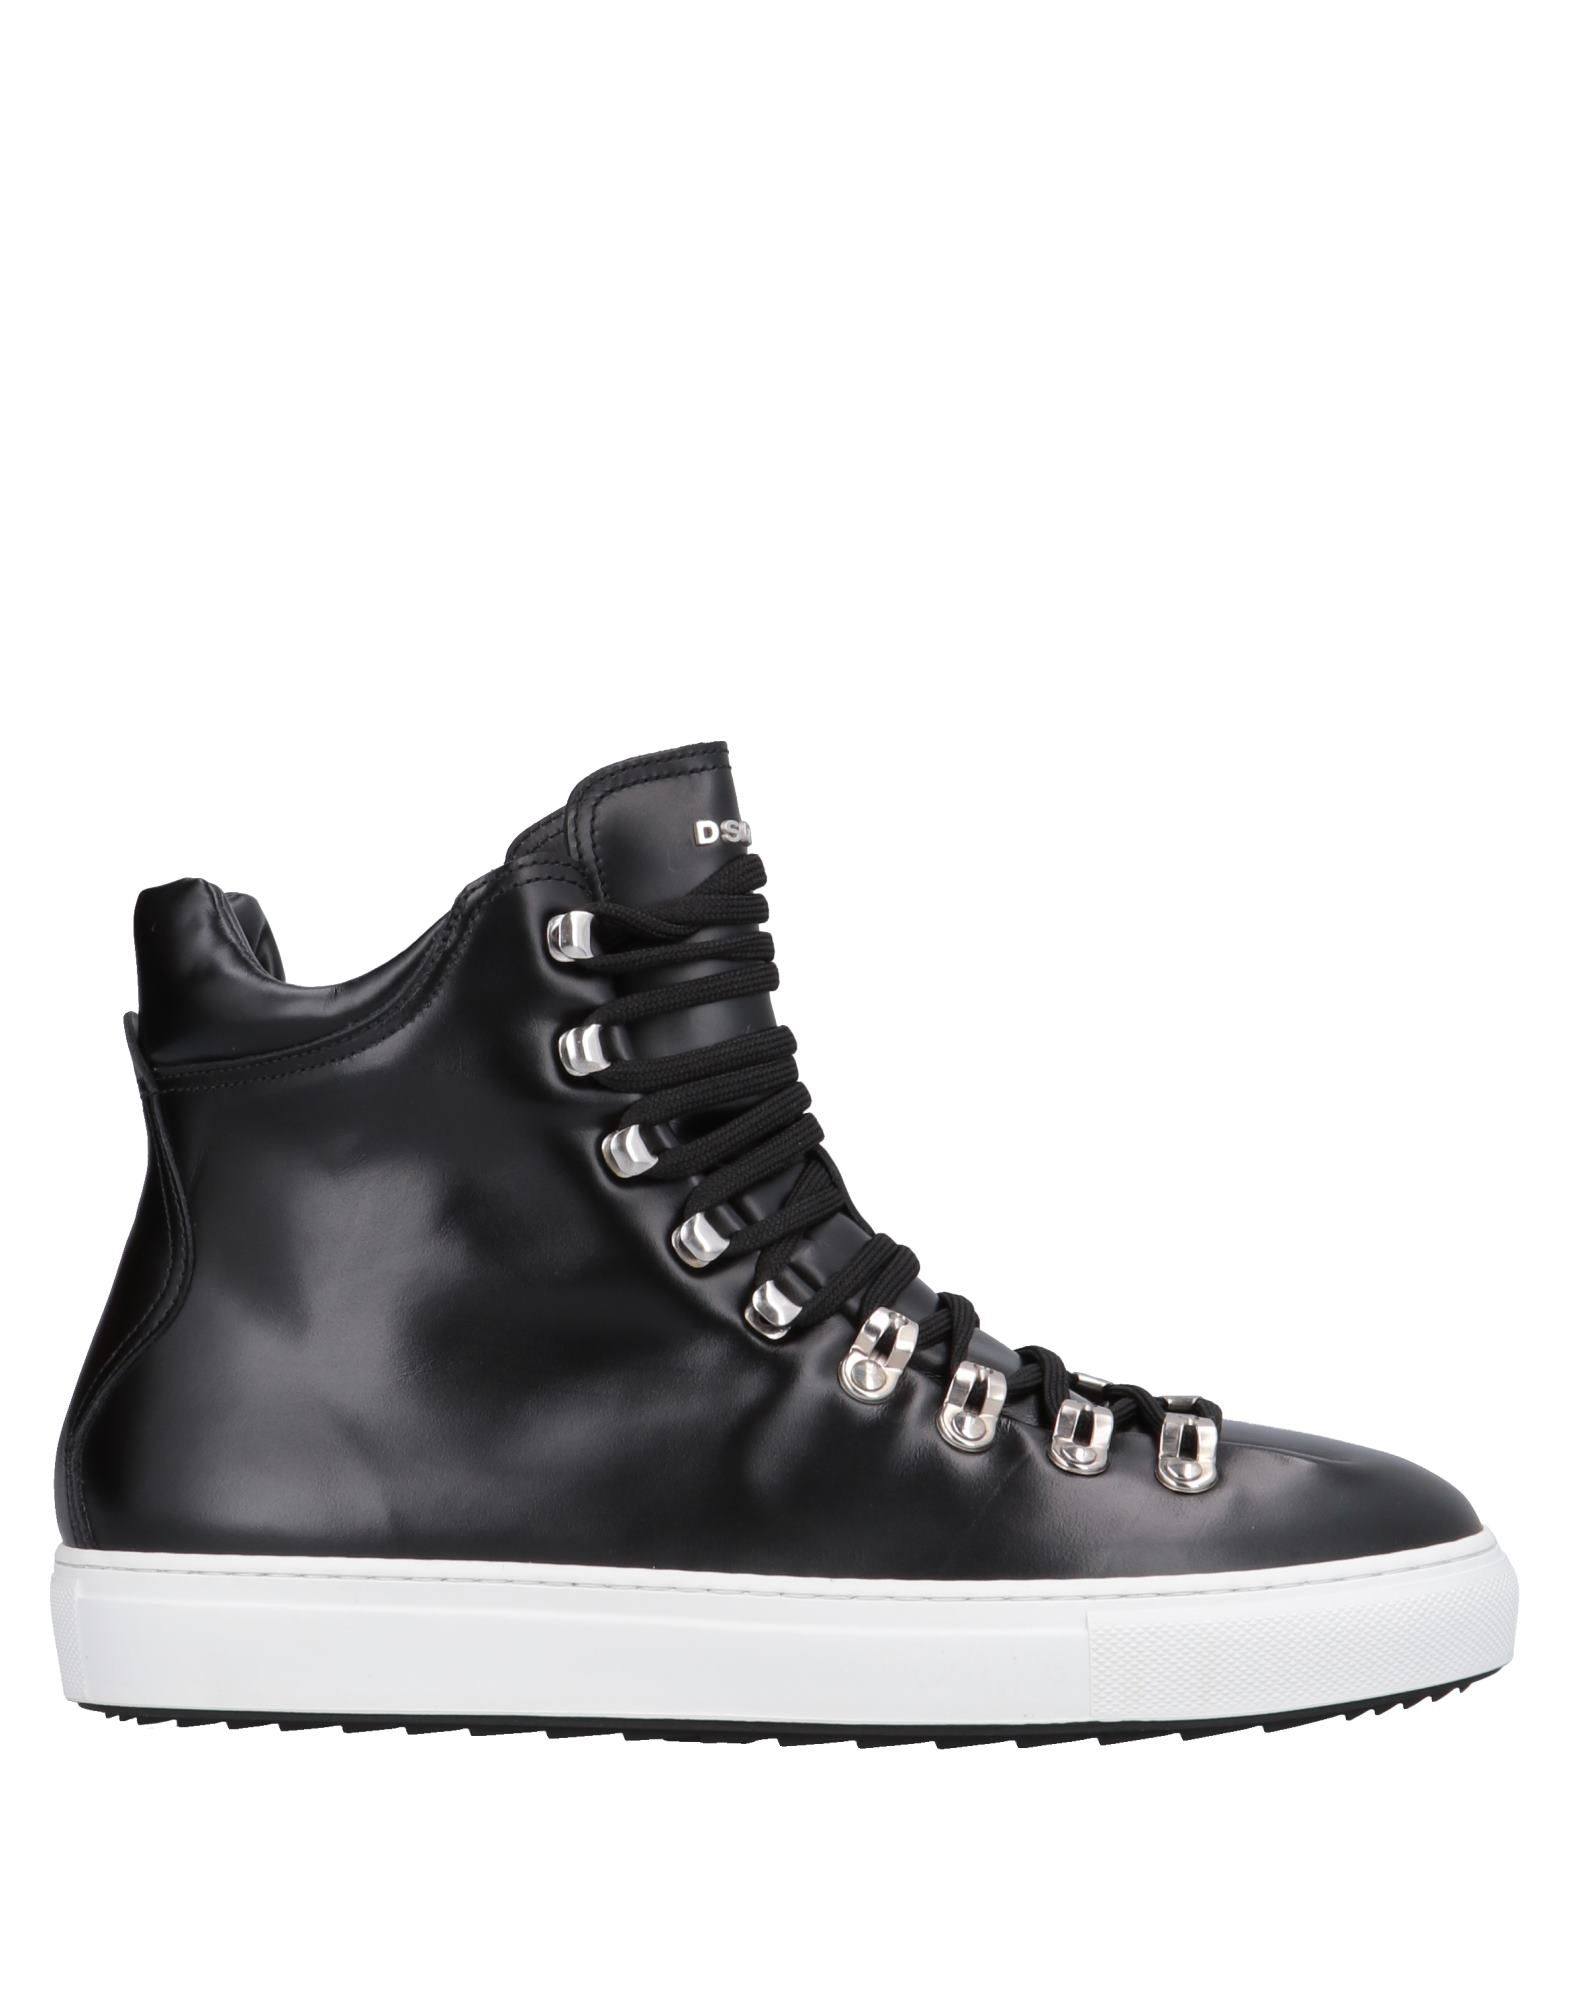 Dsquared2 Sneakers online - Men Dsquared2 Sneakers online Sneakers on  Australia - 11555269RX f27ddc